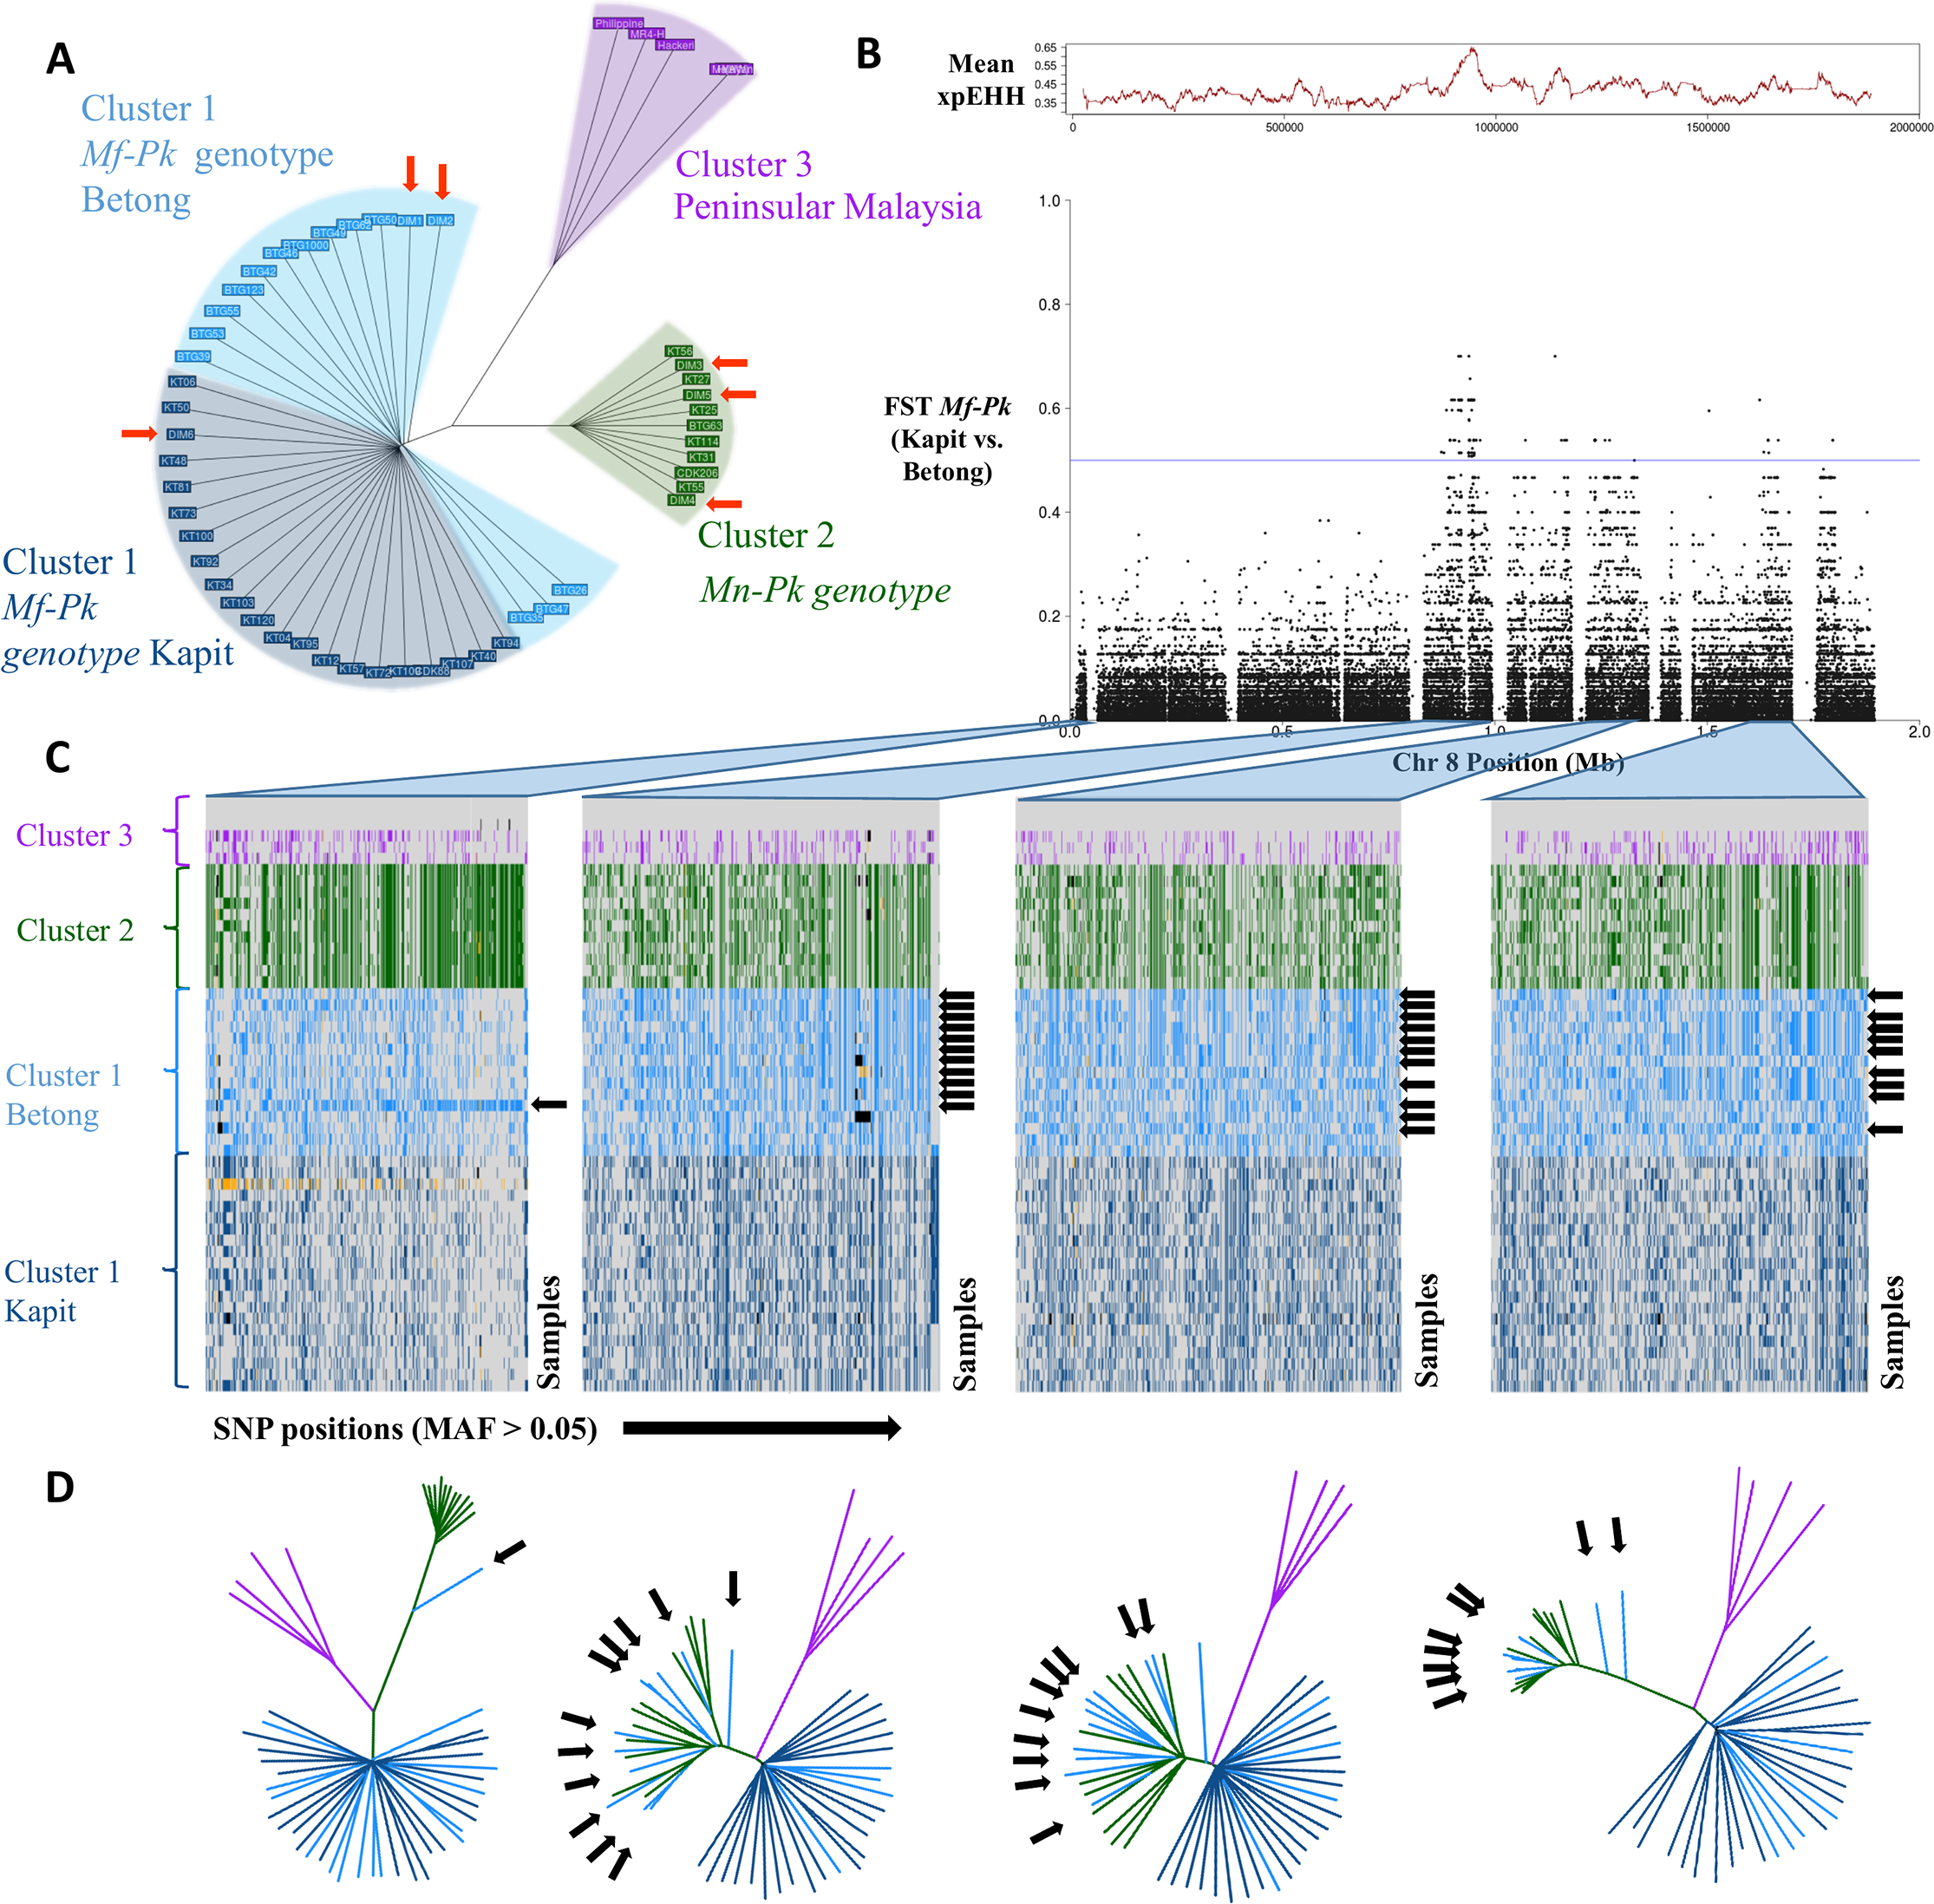 Whole genome population structure and evidence of genetic exchange in chromosome 8.